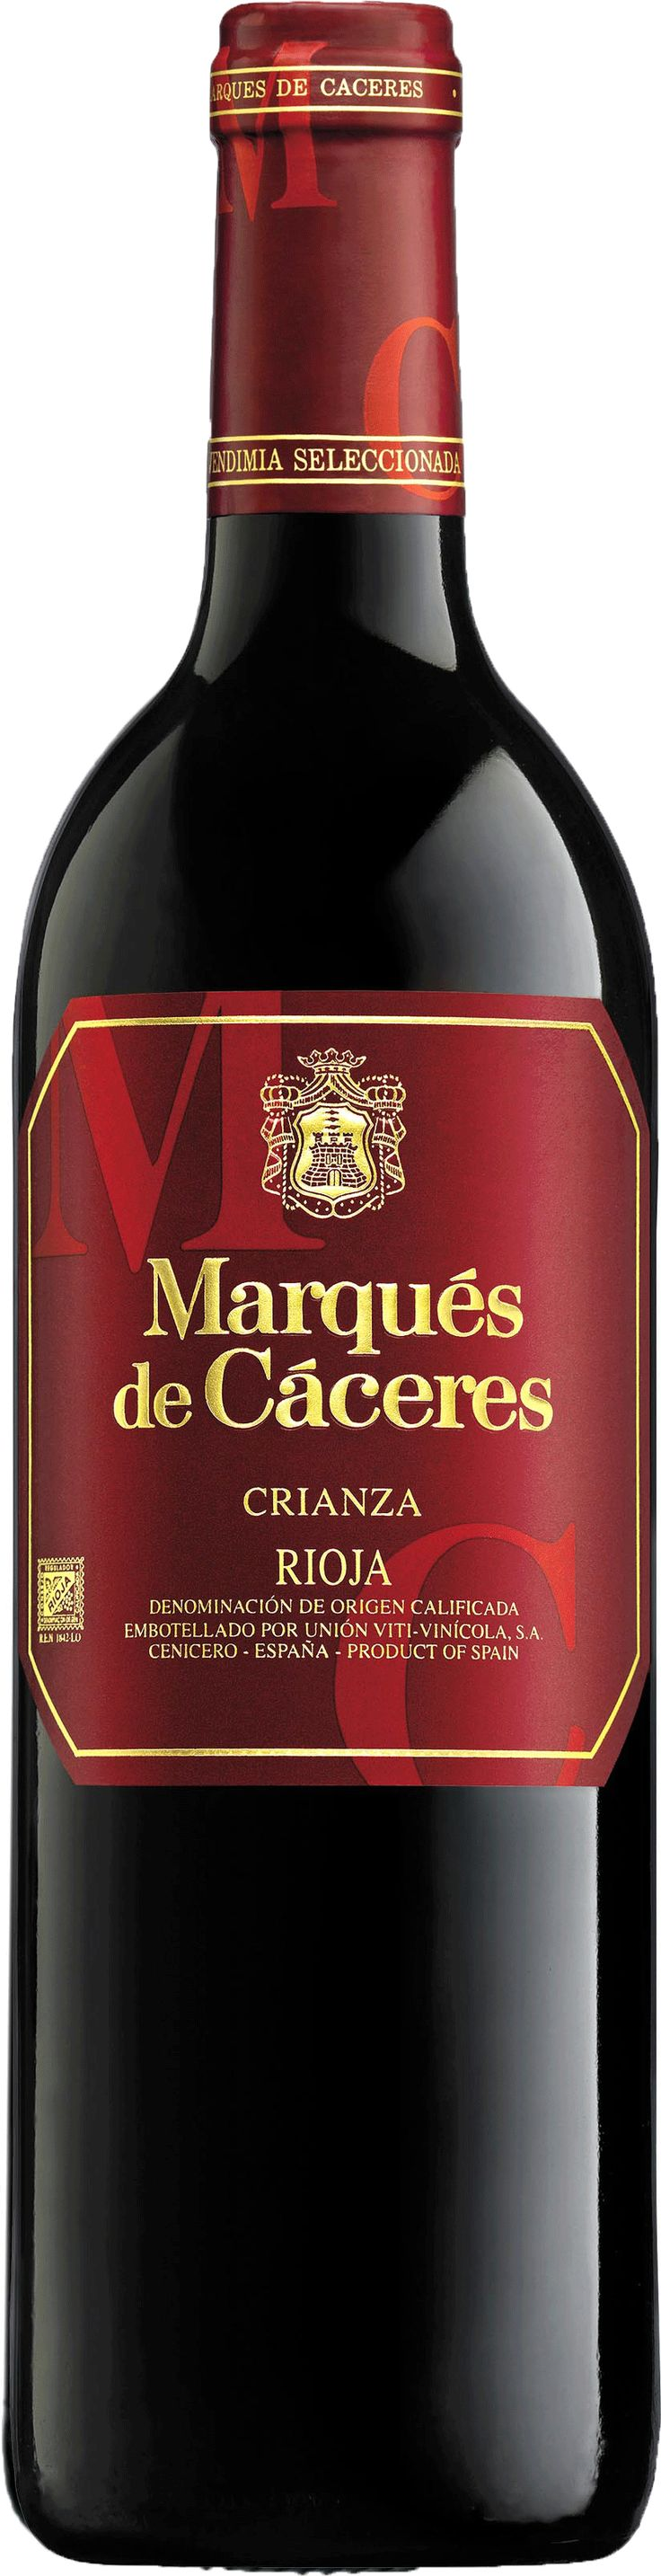 Marques de Caceres CRIANZA. A Spanish Red Wine from la Rioja. Comte de Sibour is the exclusive importer of the Marques de Caceres wines in Thailand.